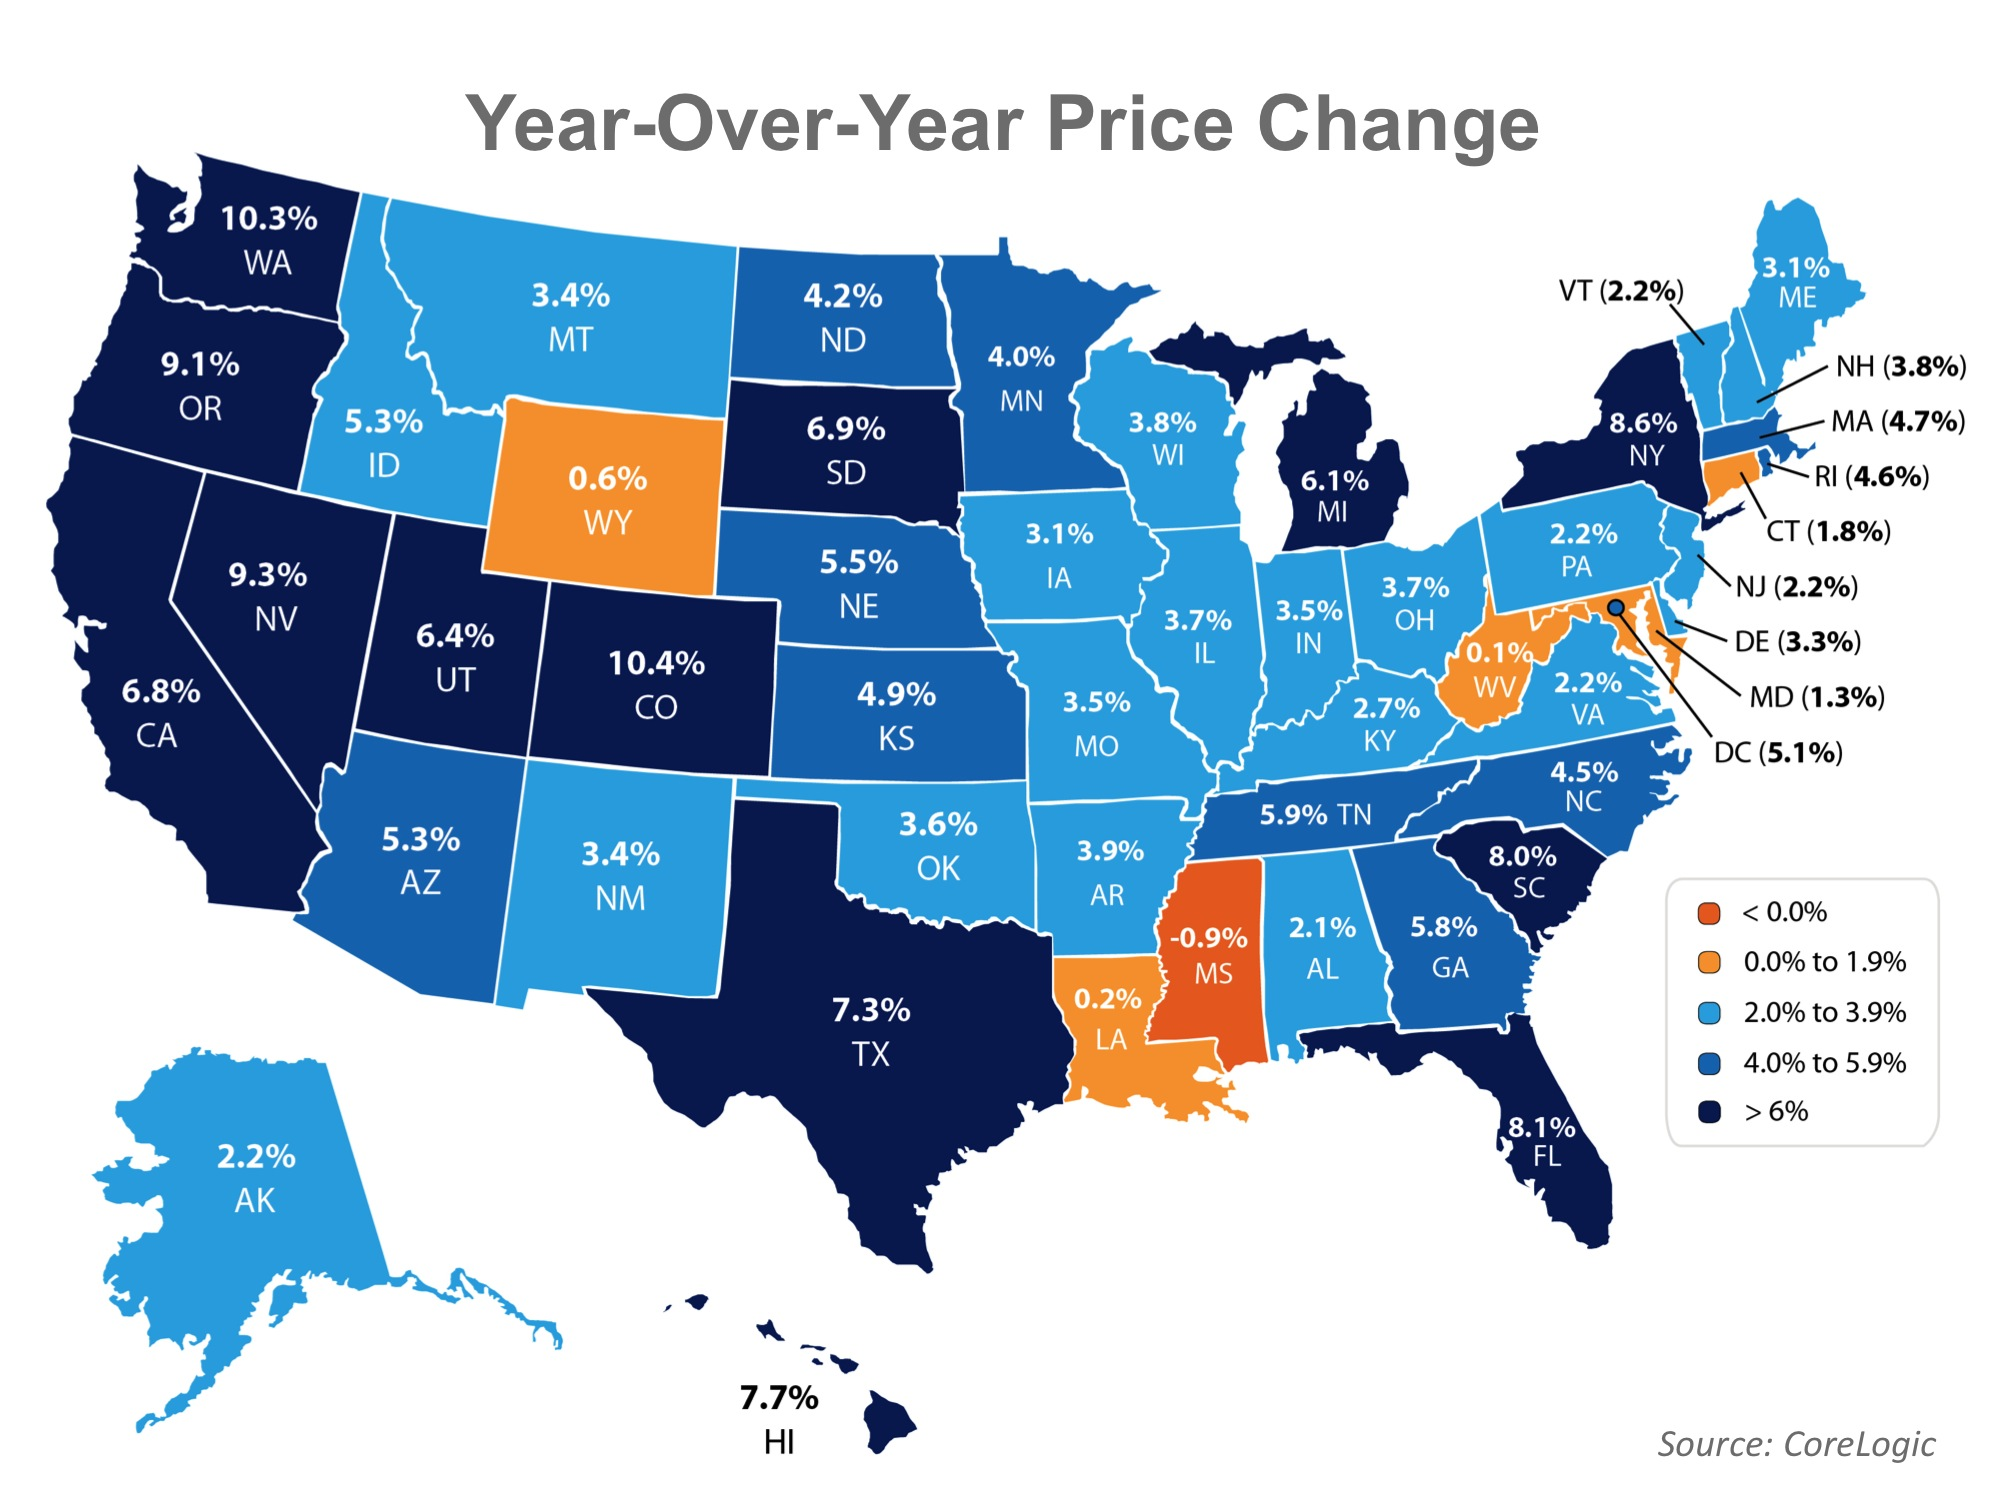 Year-Over-Year Price Change | Keeping Current Matters